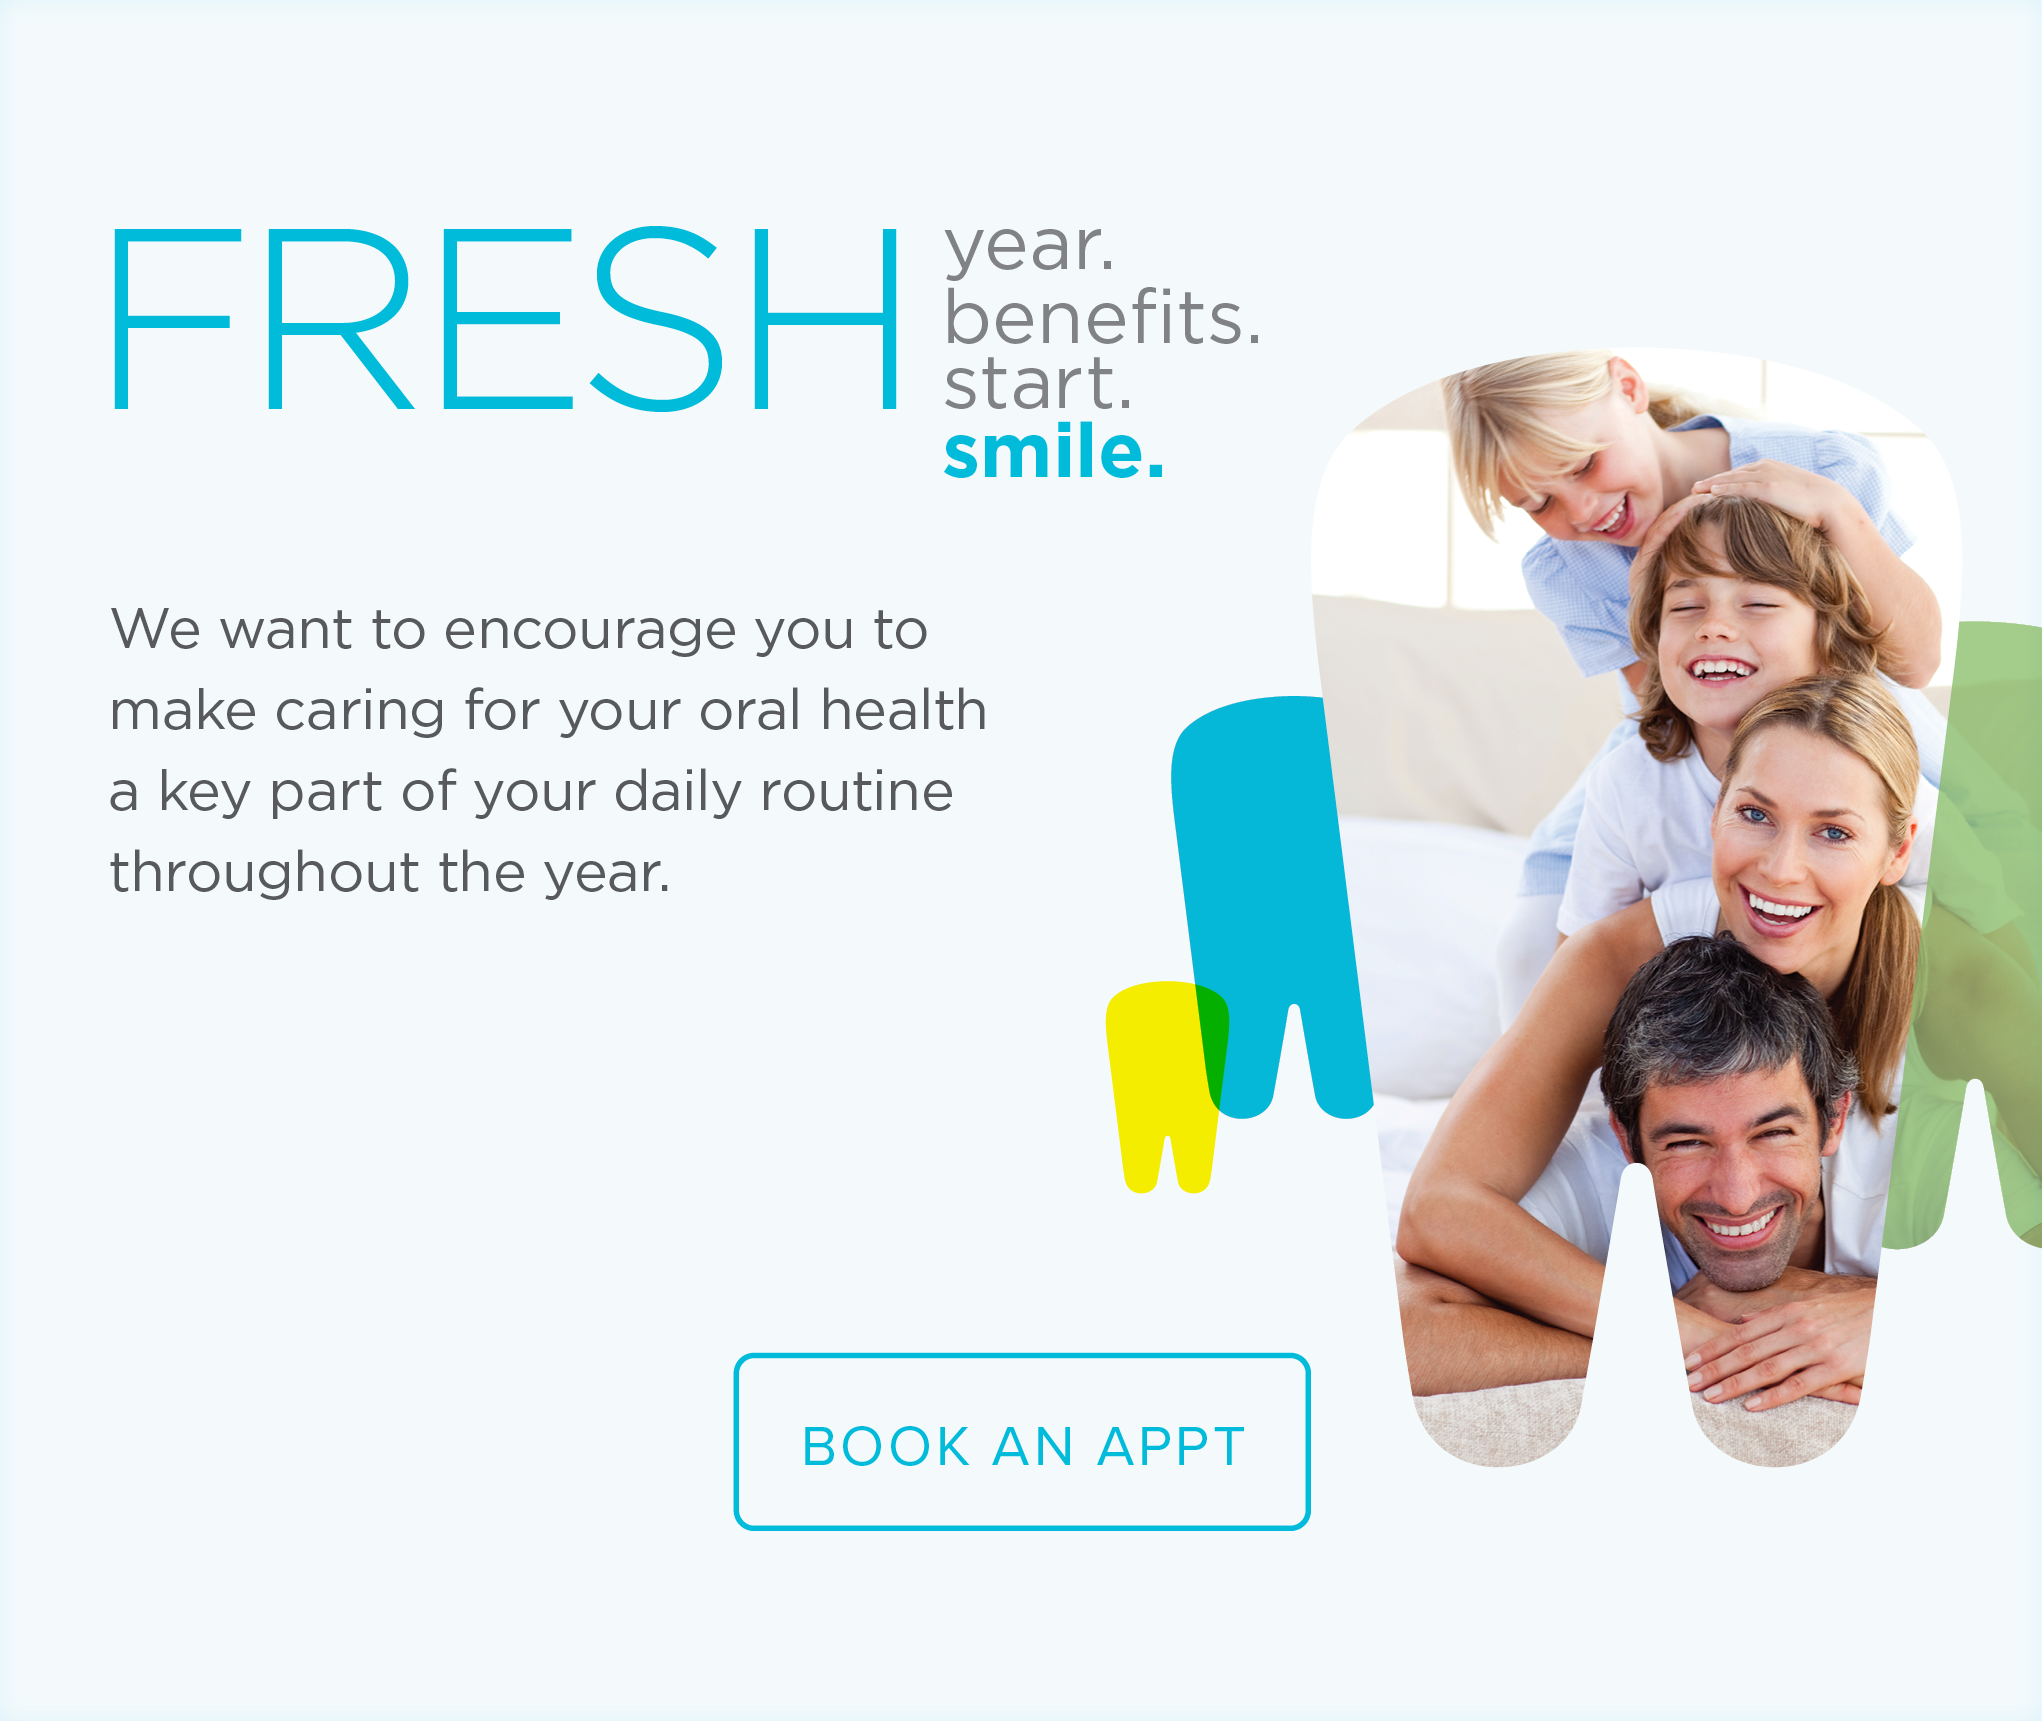 Diamond Bar Smiles Dentistry - Make the Most of Your Benefits